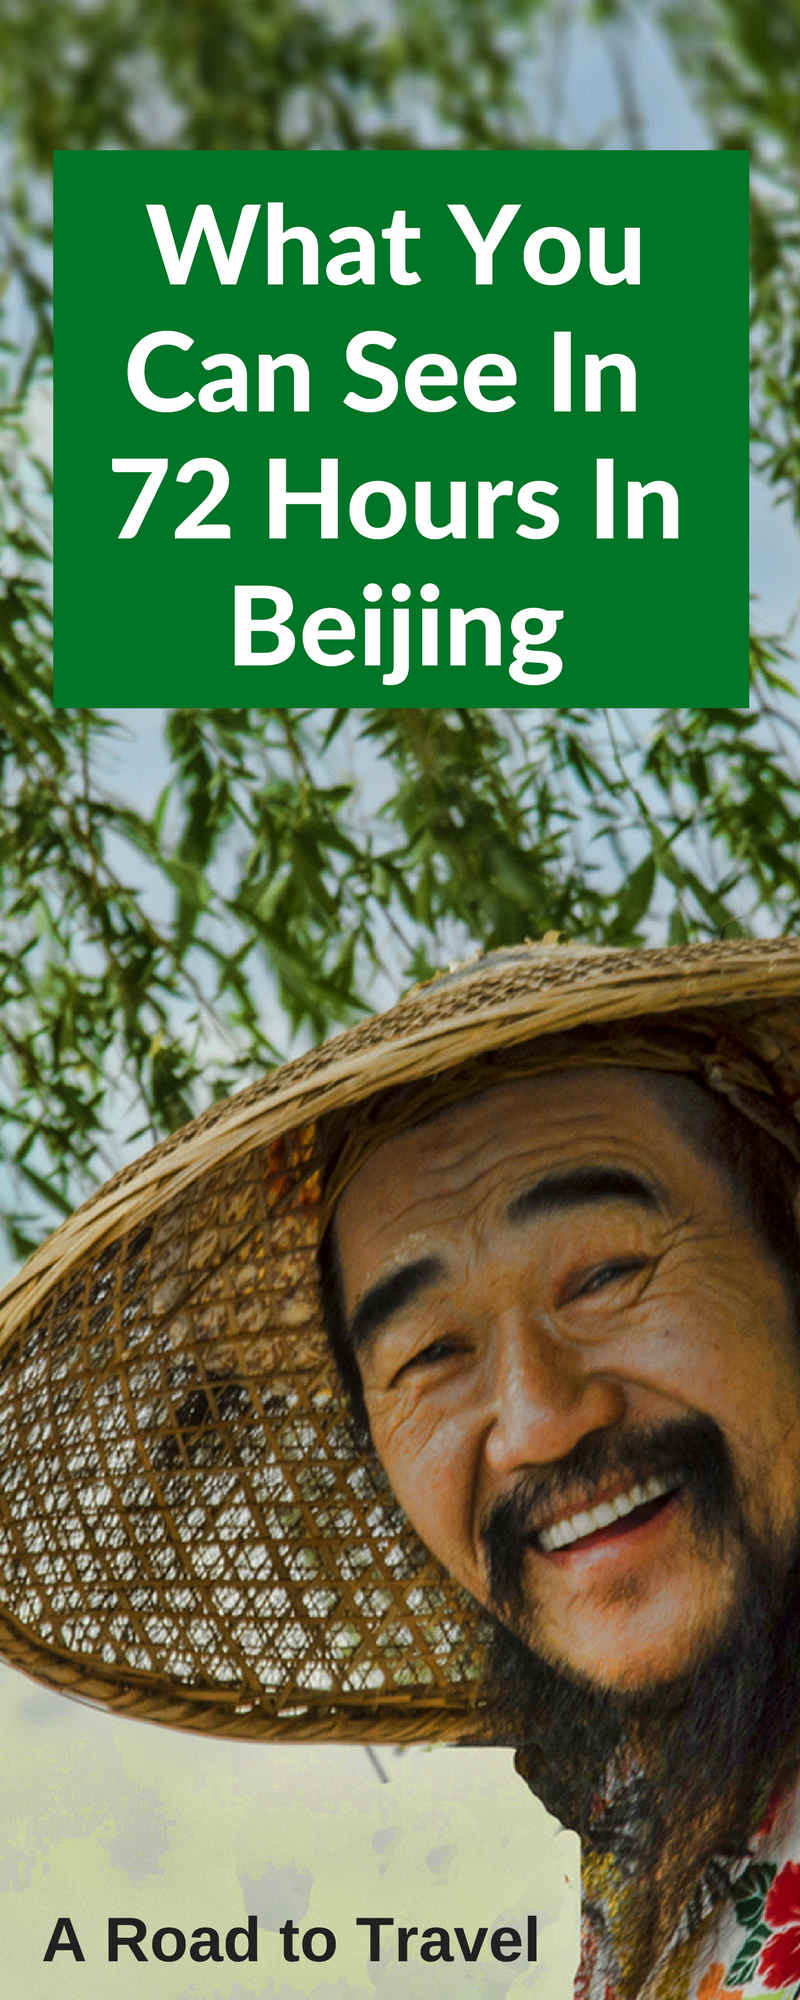 3 Days To Discover Beijing, China | Beijing | China | Asia | Asian Recipes | Asian Salads | Asian Chicken Recipes | Asian Makeup | Asian Noodles | Travel | A Road to Travel.com